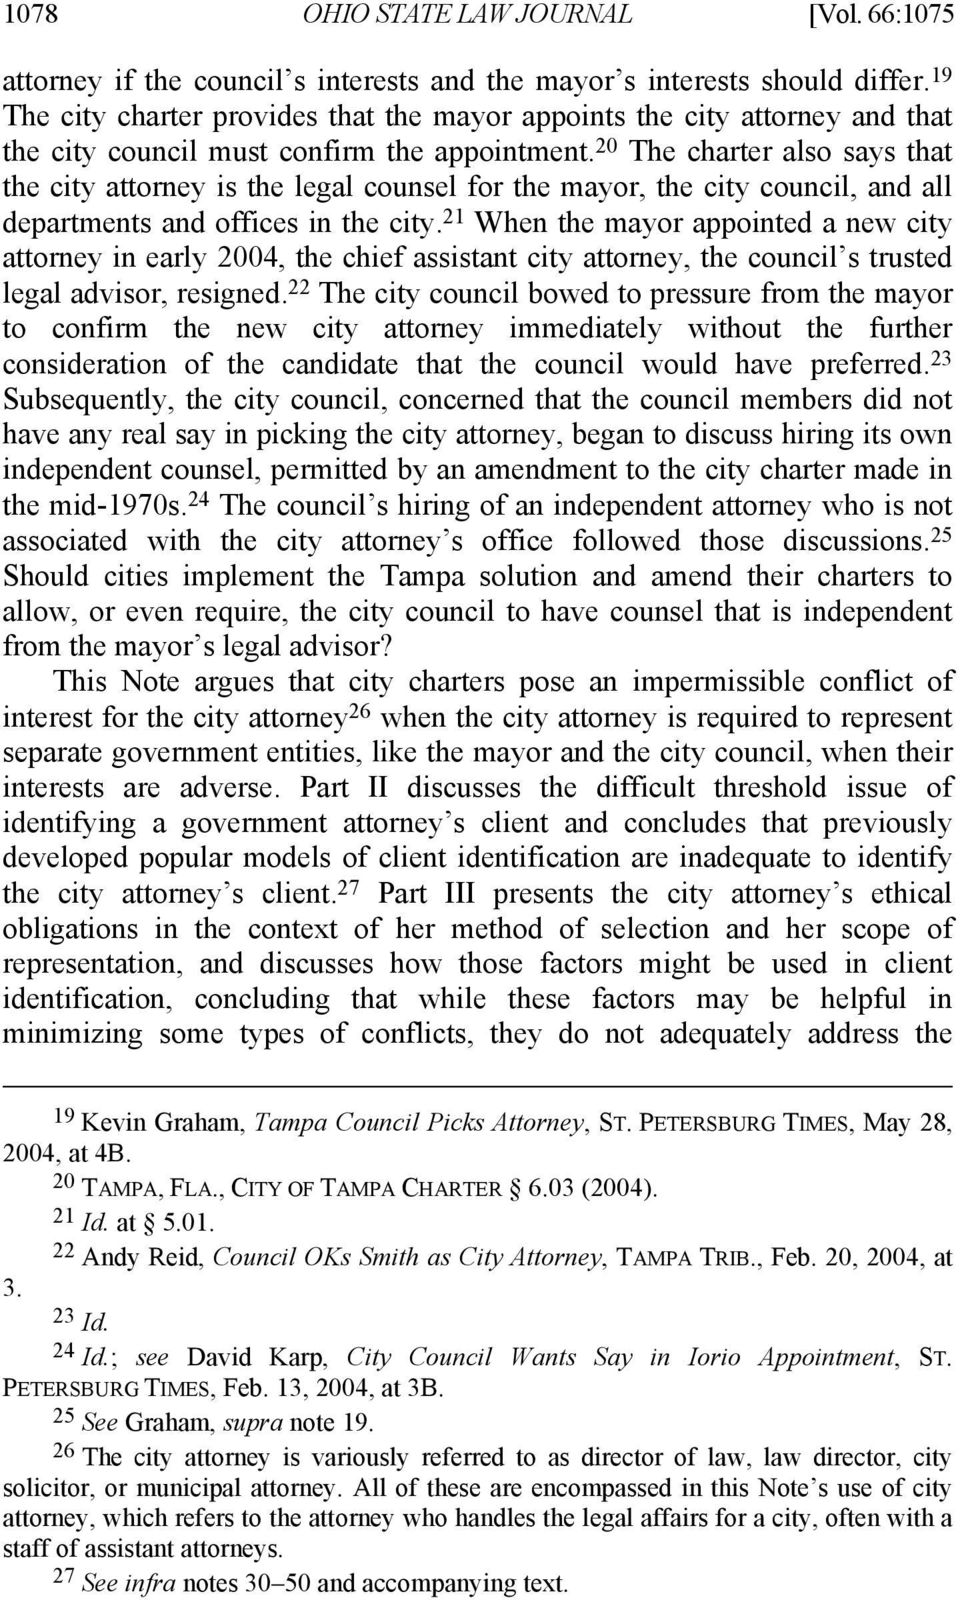 20 The charter also says that the city attorney is the legal counsel for the mayor, the city council, and all departments and offices in the city.